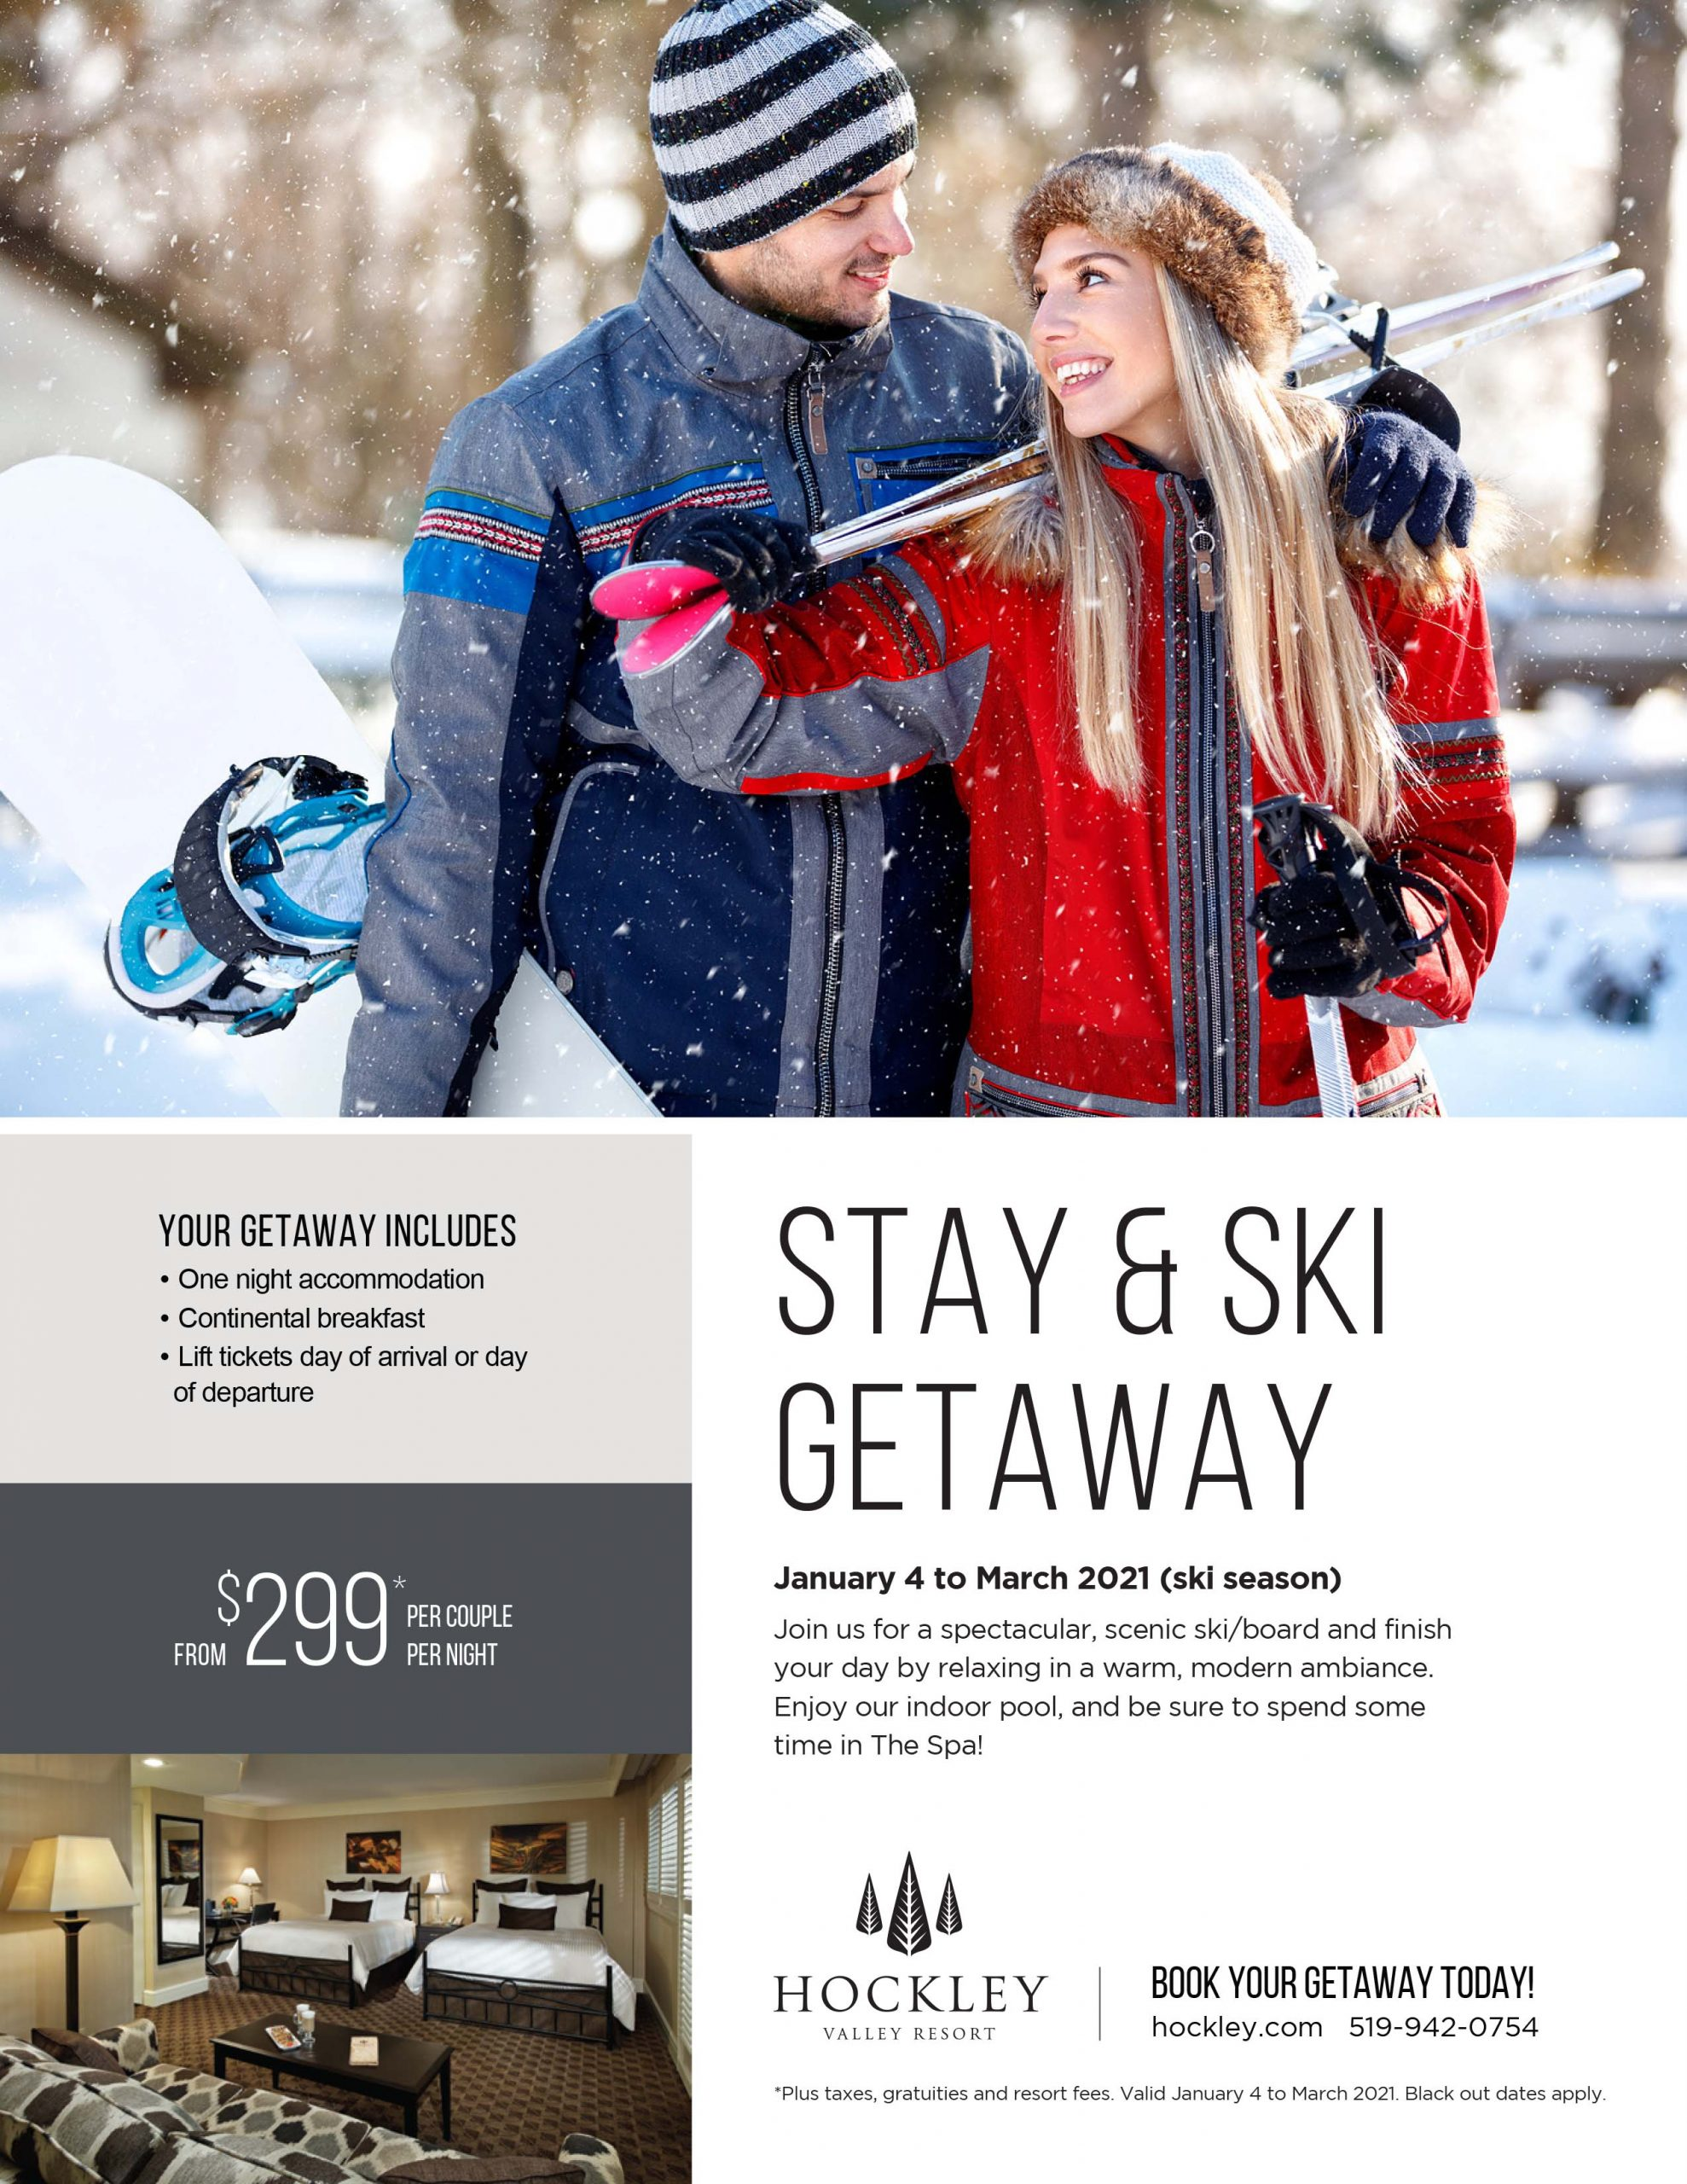 stay and ski getaway package